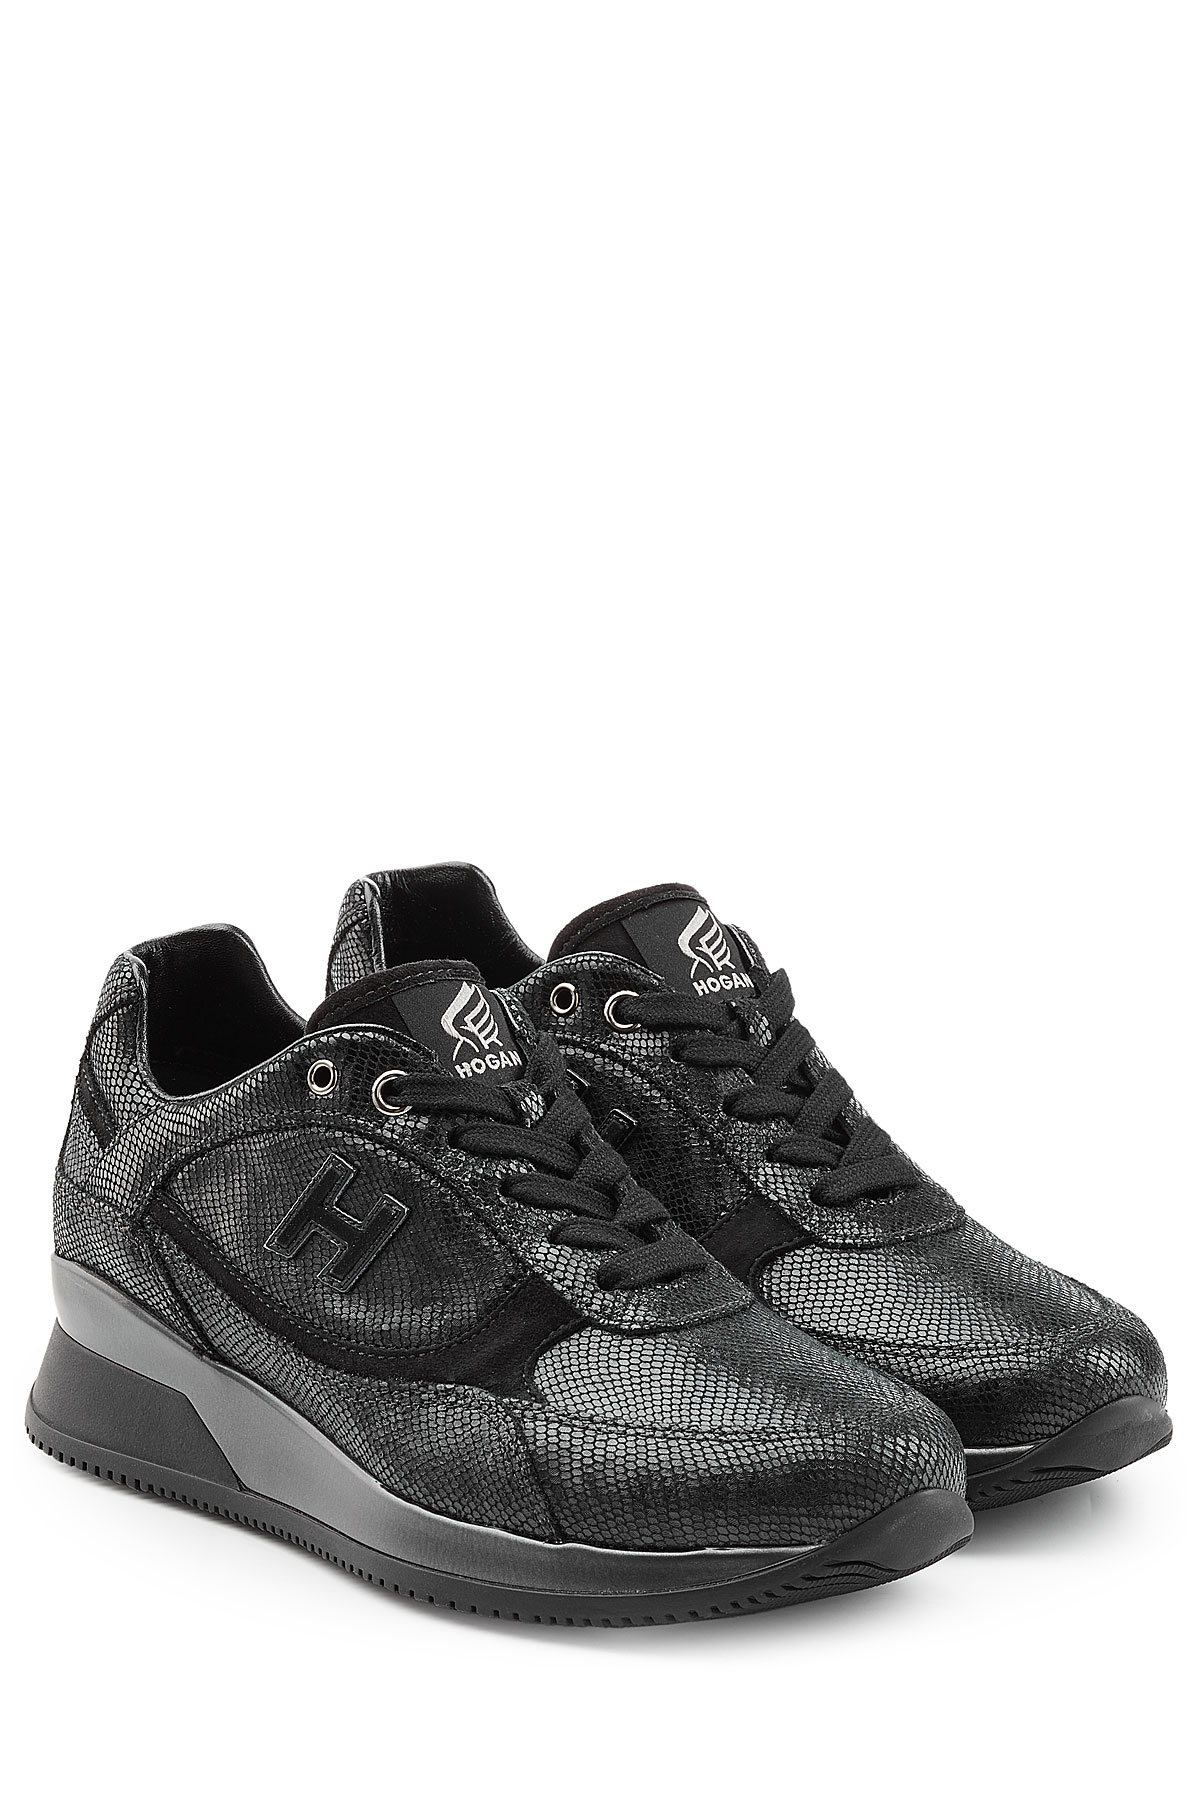 Hogan Embossed Leather Sneakers amazon cheap online cheap sale from china best sale cheap price collections cheap online oJTzAA